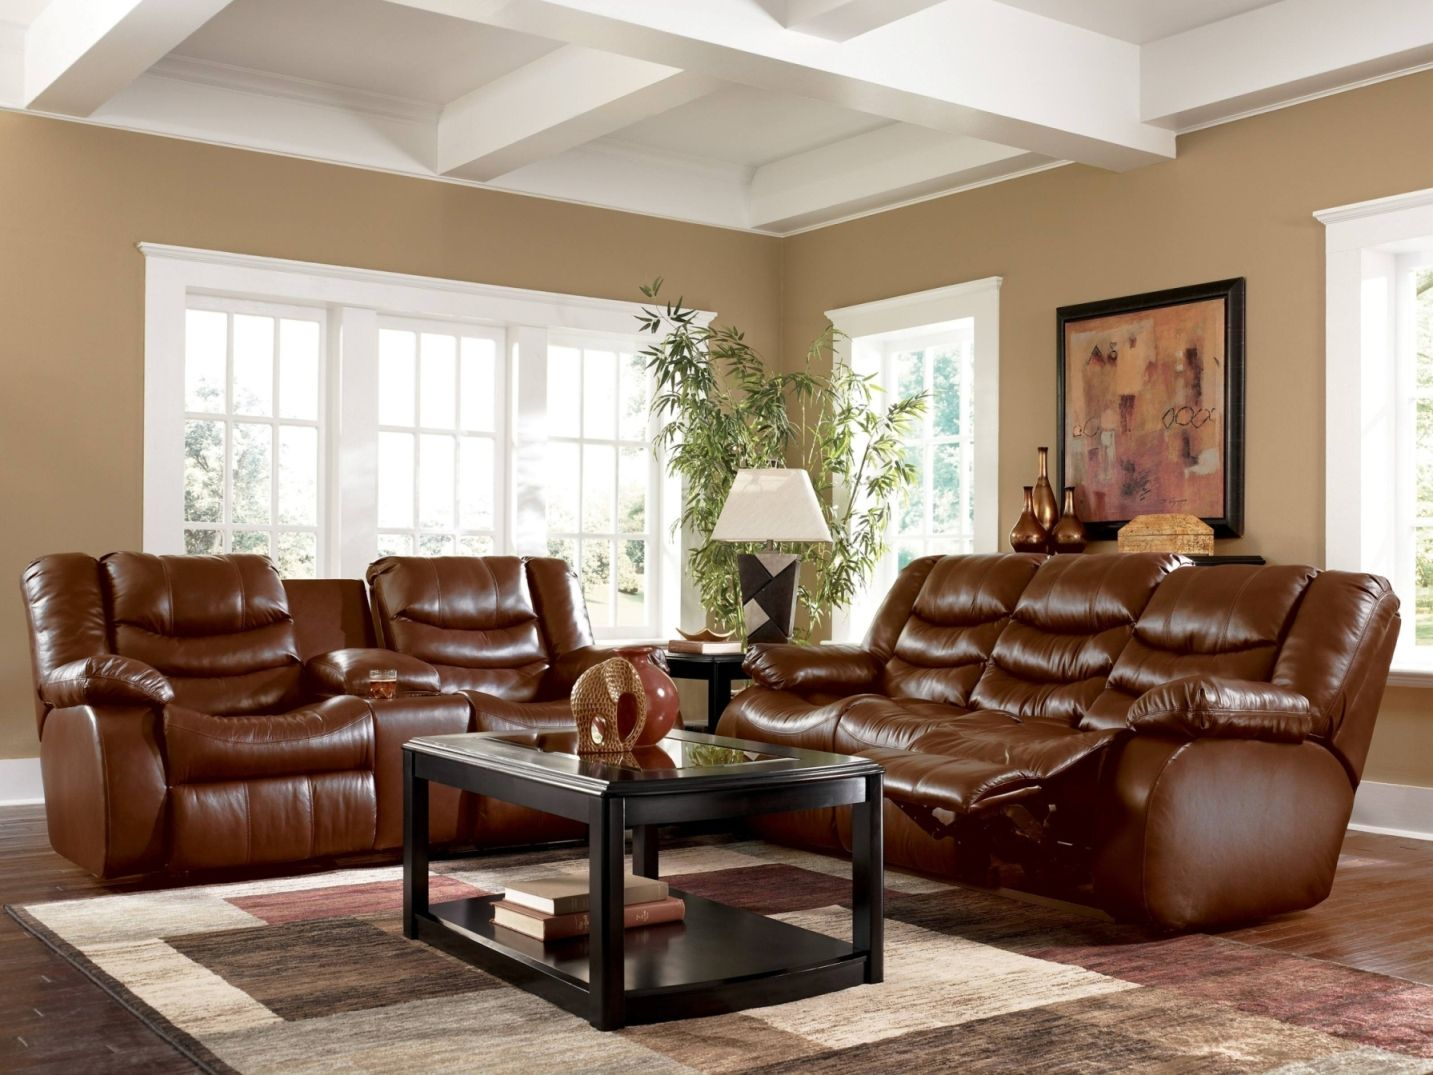 Used Living Room Furniture Leather Couch Decorating Ideas Living Room Home Design